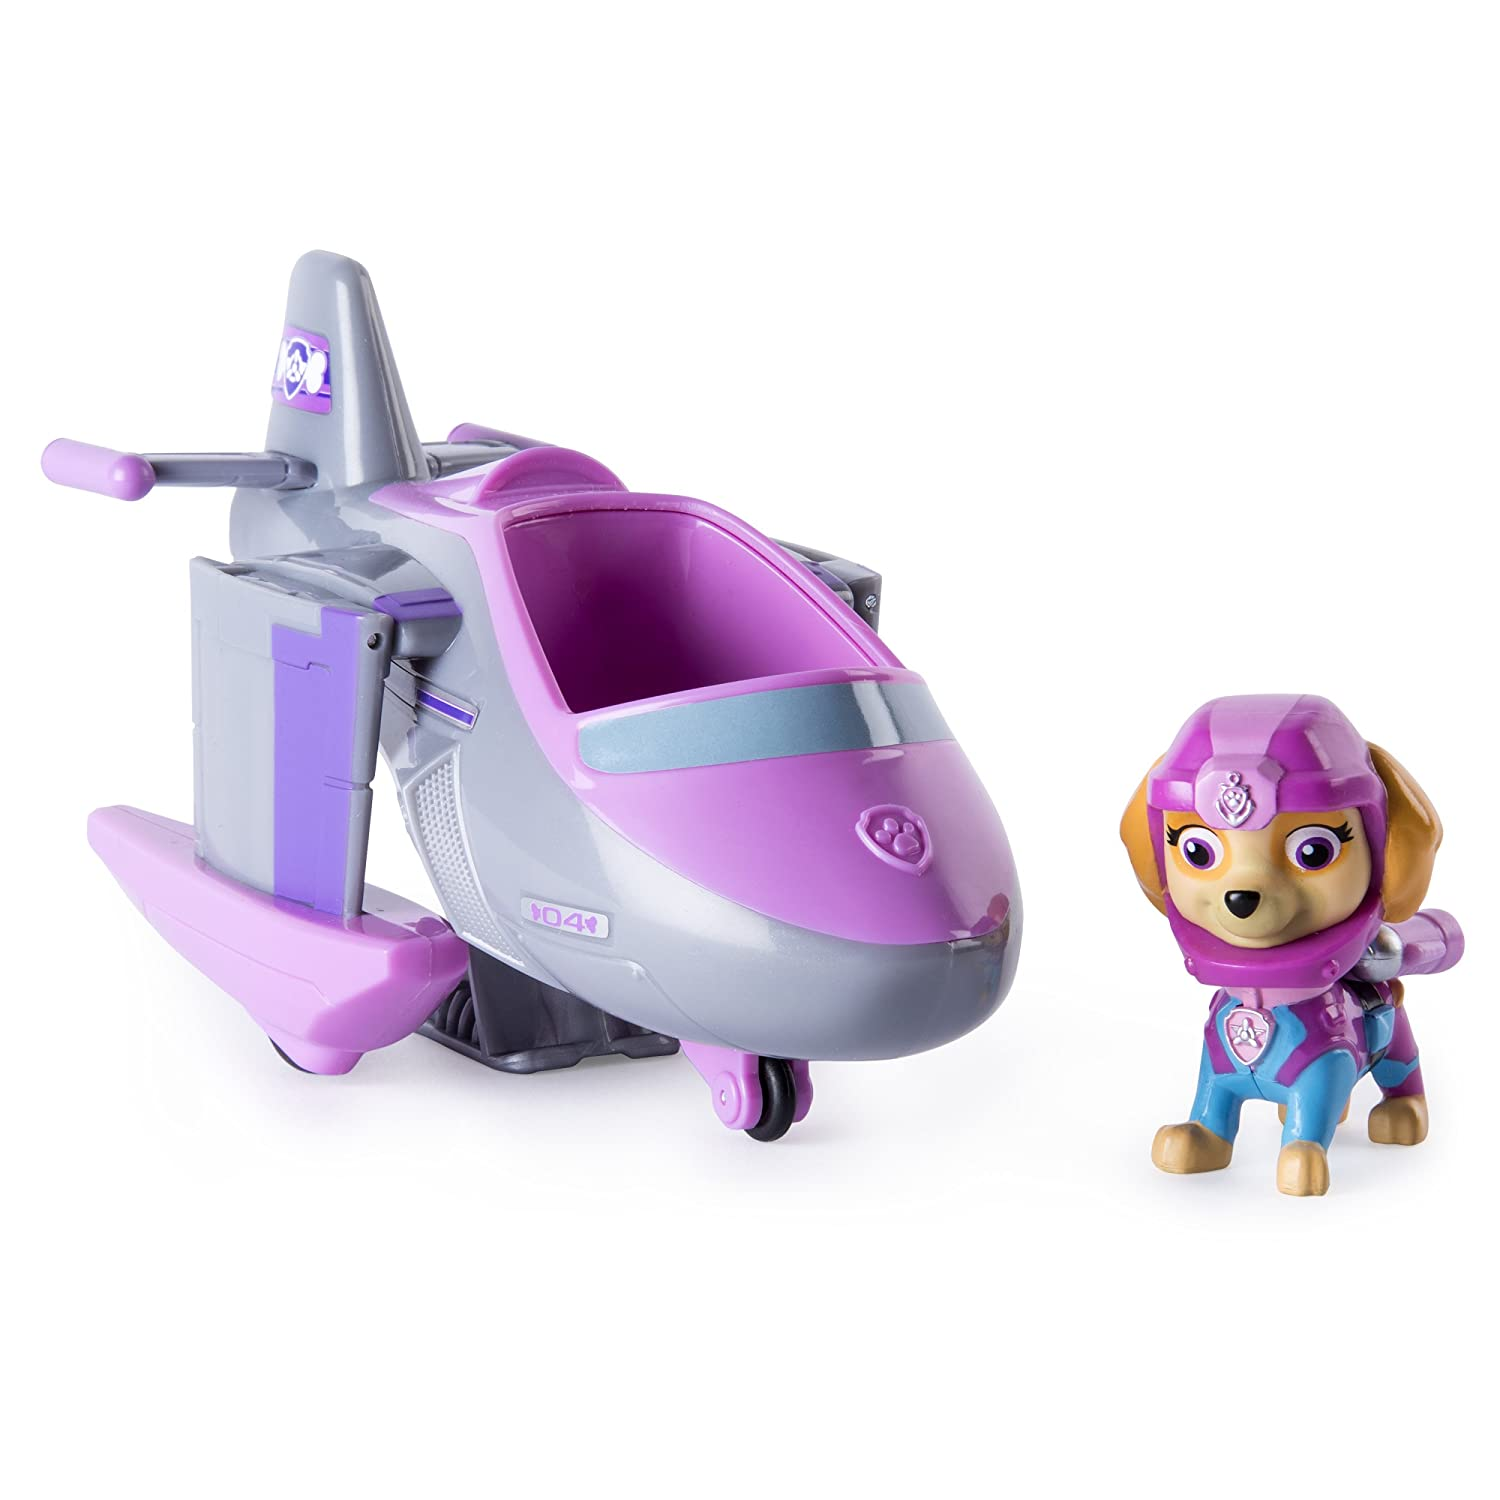 Paw Patrol – Chase's Transforming Sea Patrol Vehicle Spin Master 20084999-6040064